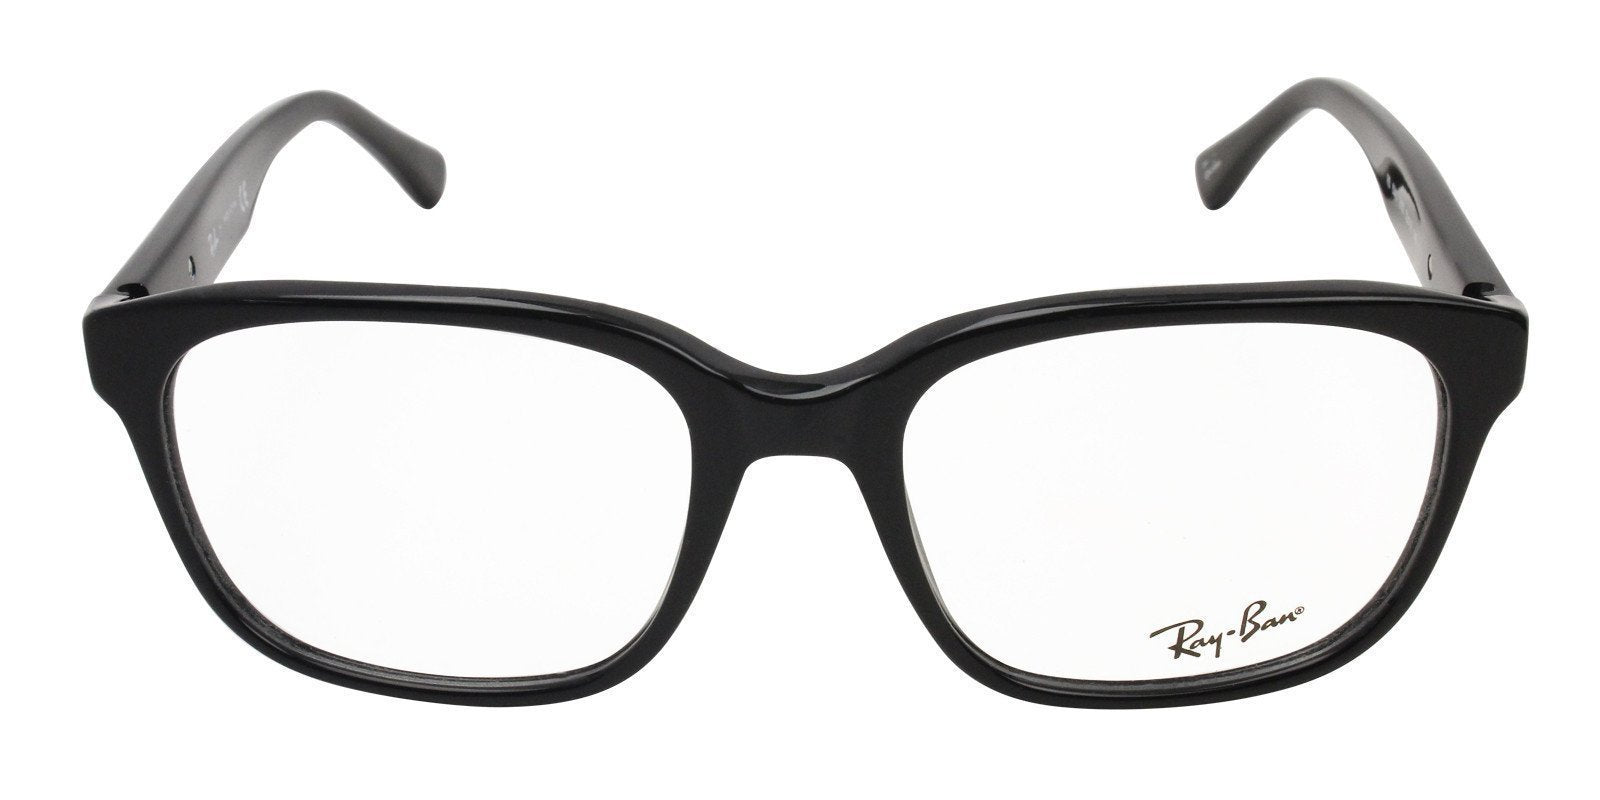 Ray Ban Rx - RX5340 Black Rectangular Women Eyeglasses - 53mm-Eyeglasses-Designer Eyes